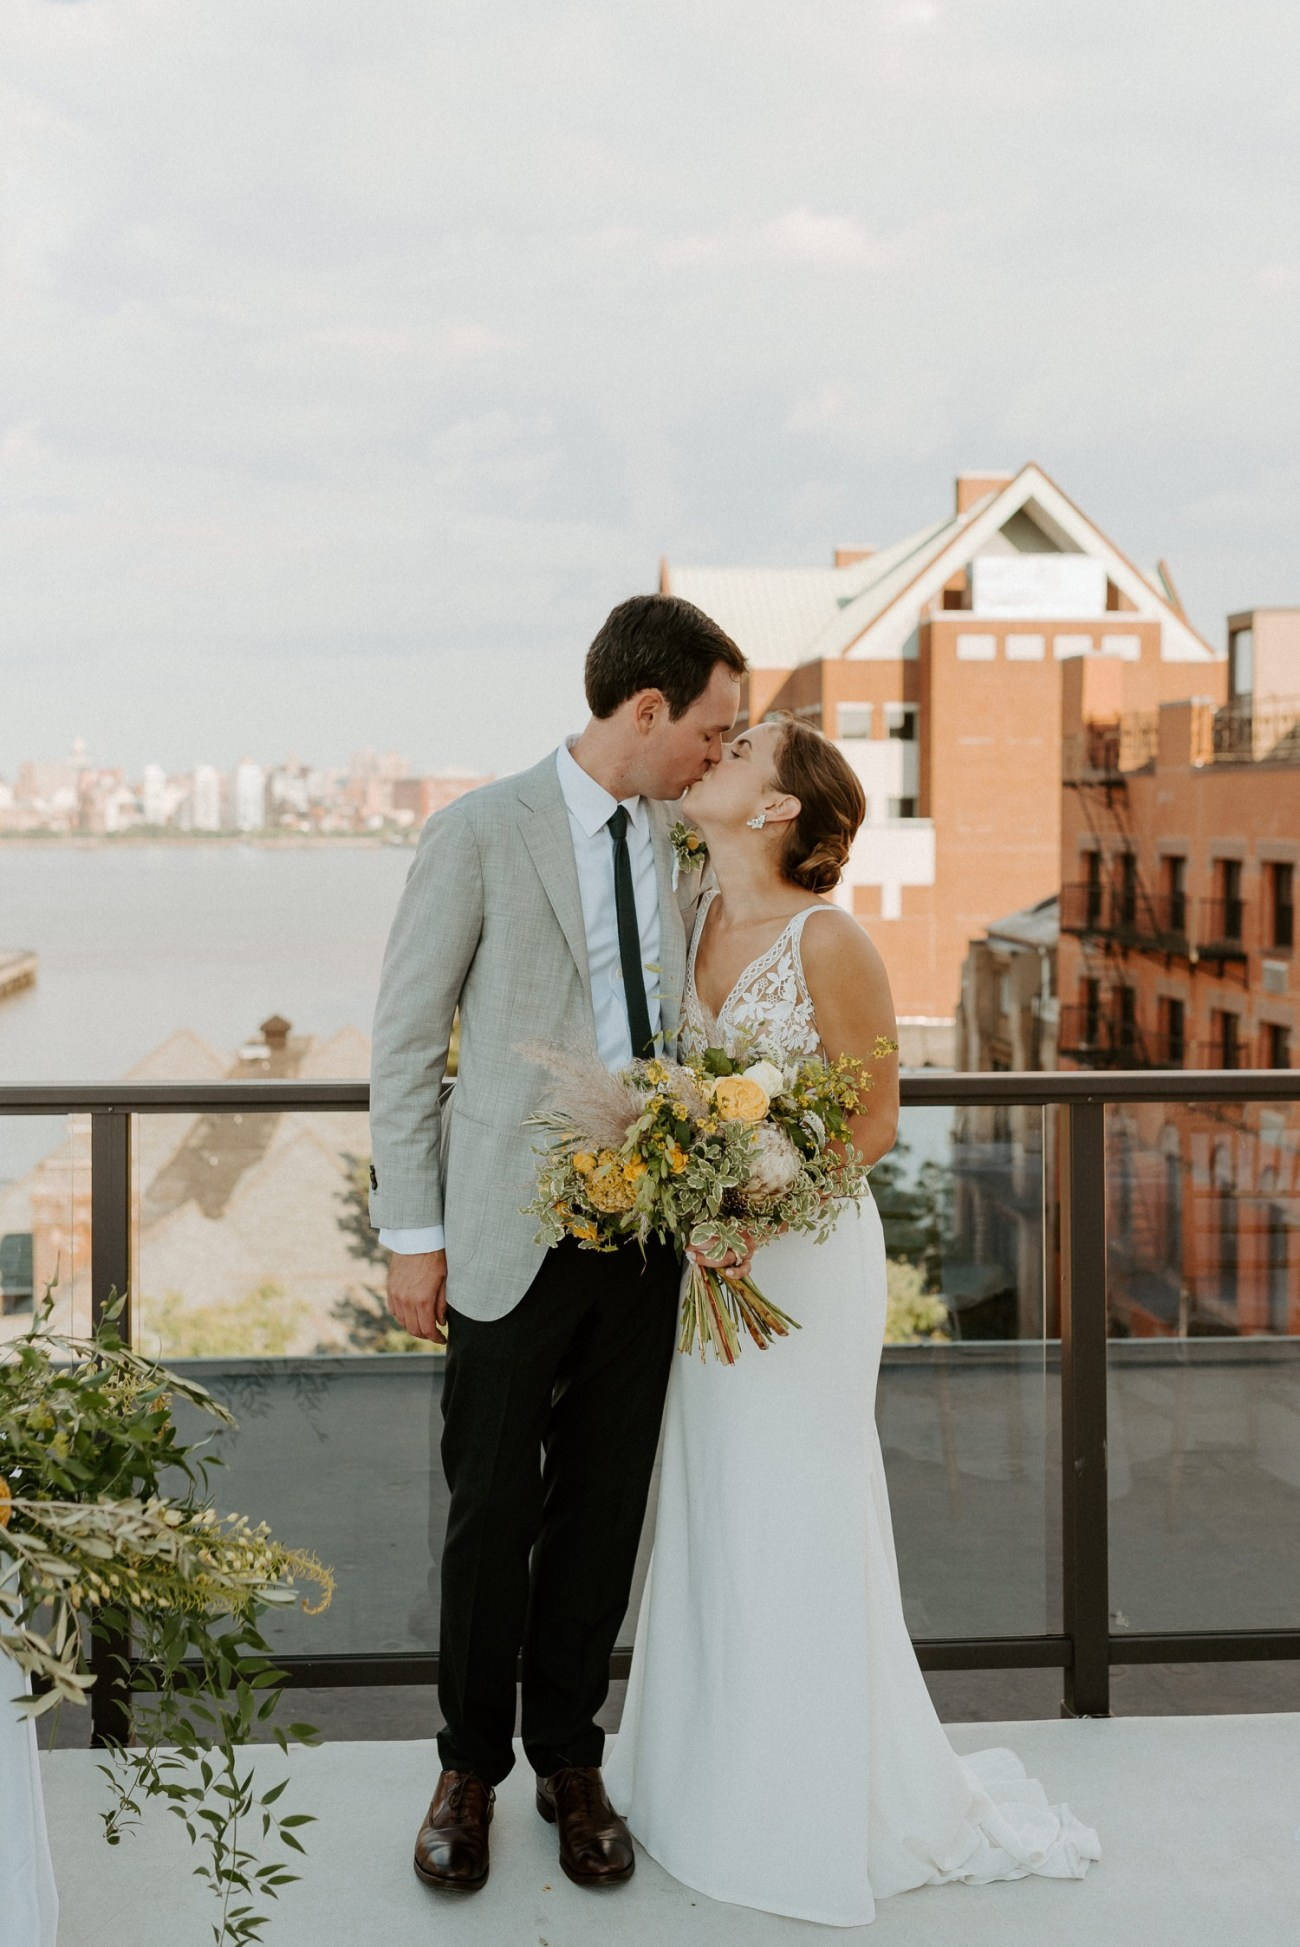 Antique Loft Hoboken Wedding New Jersey Wedding Photographer Anais Possamai Photography 053